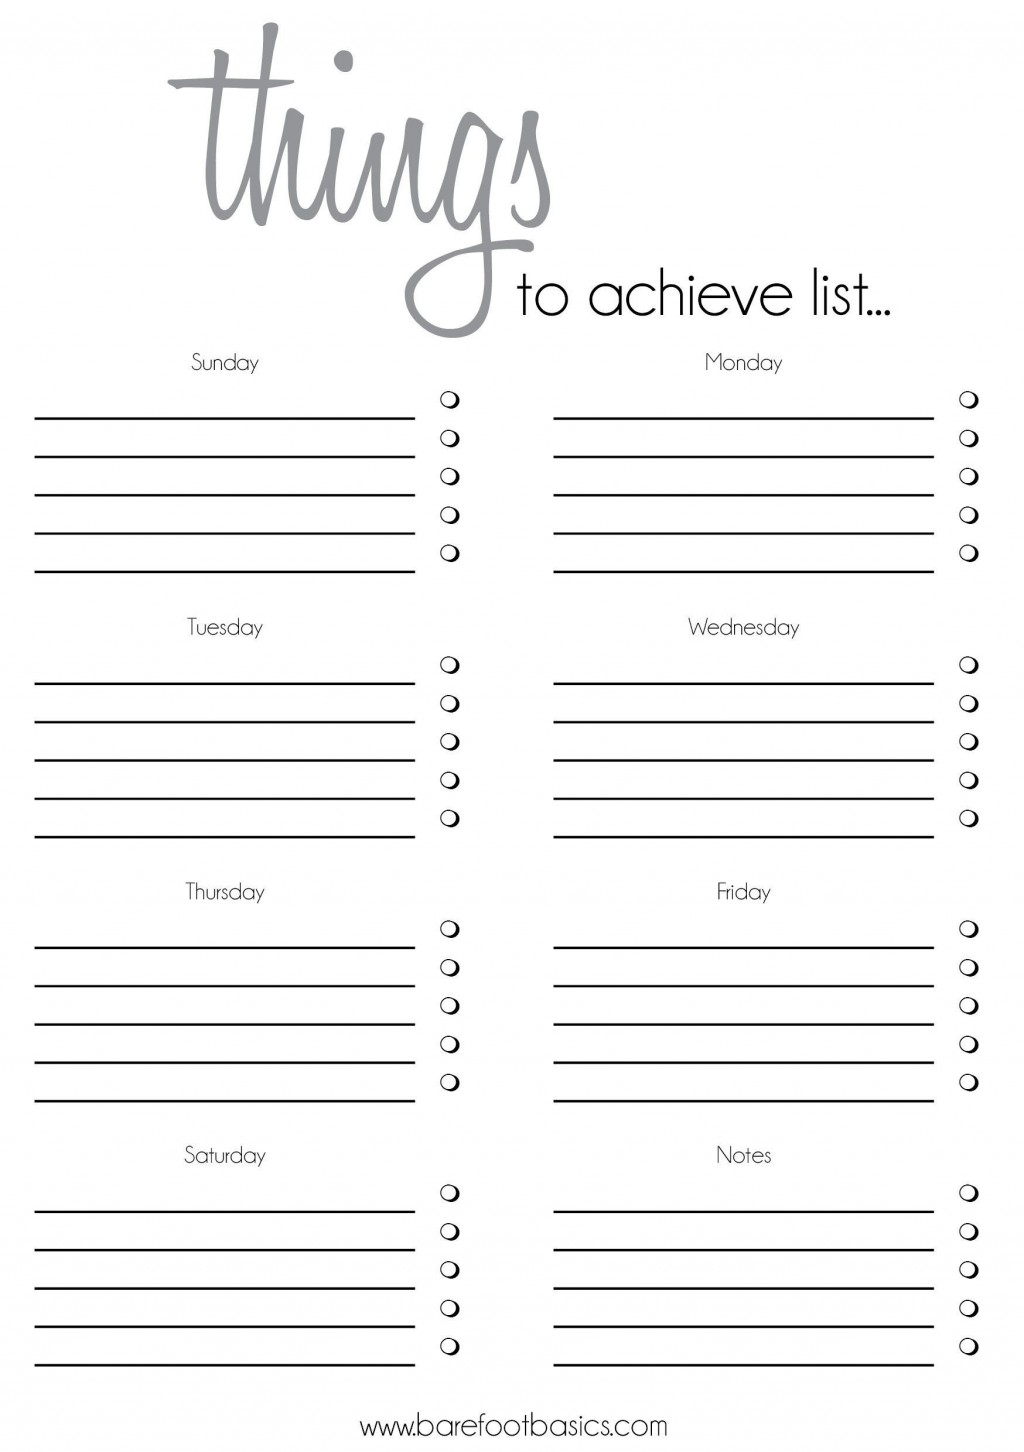 001 Archaicawful To Do List Template Design  Templates Microsoft Excel Printable FreeLarge